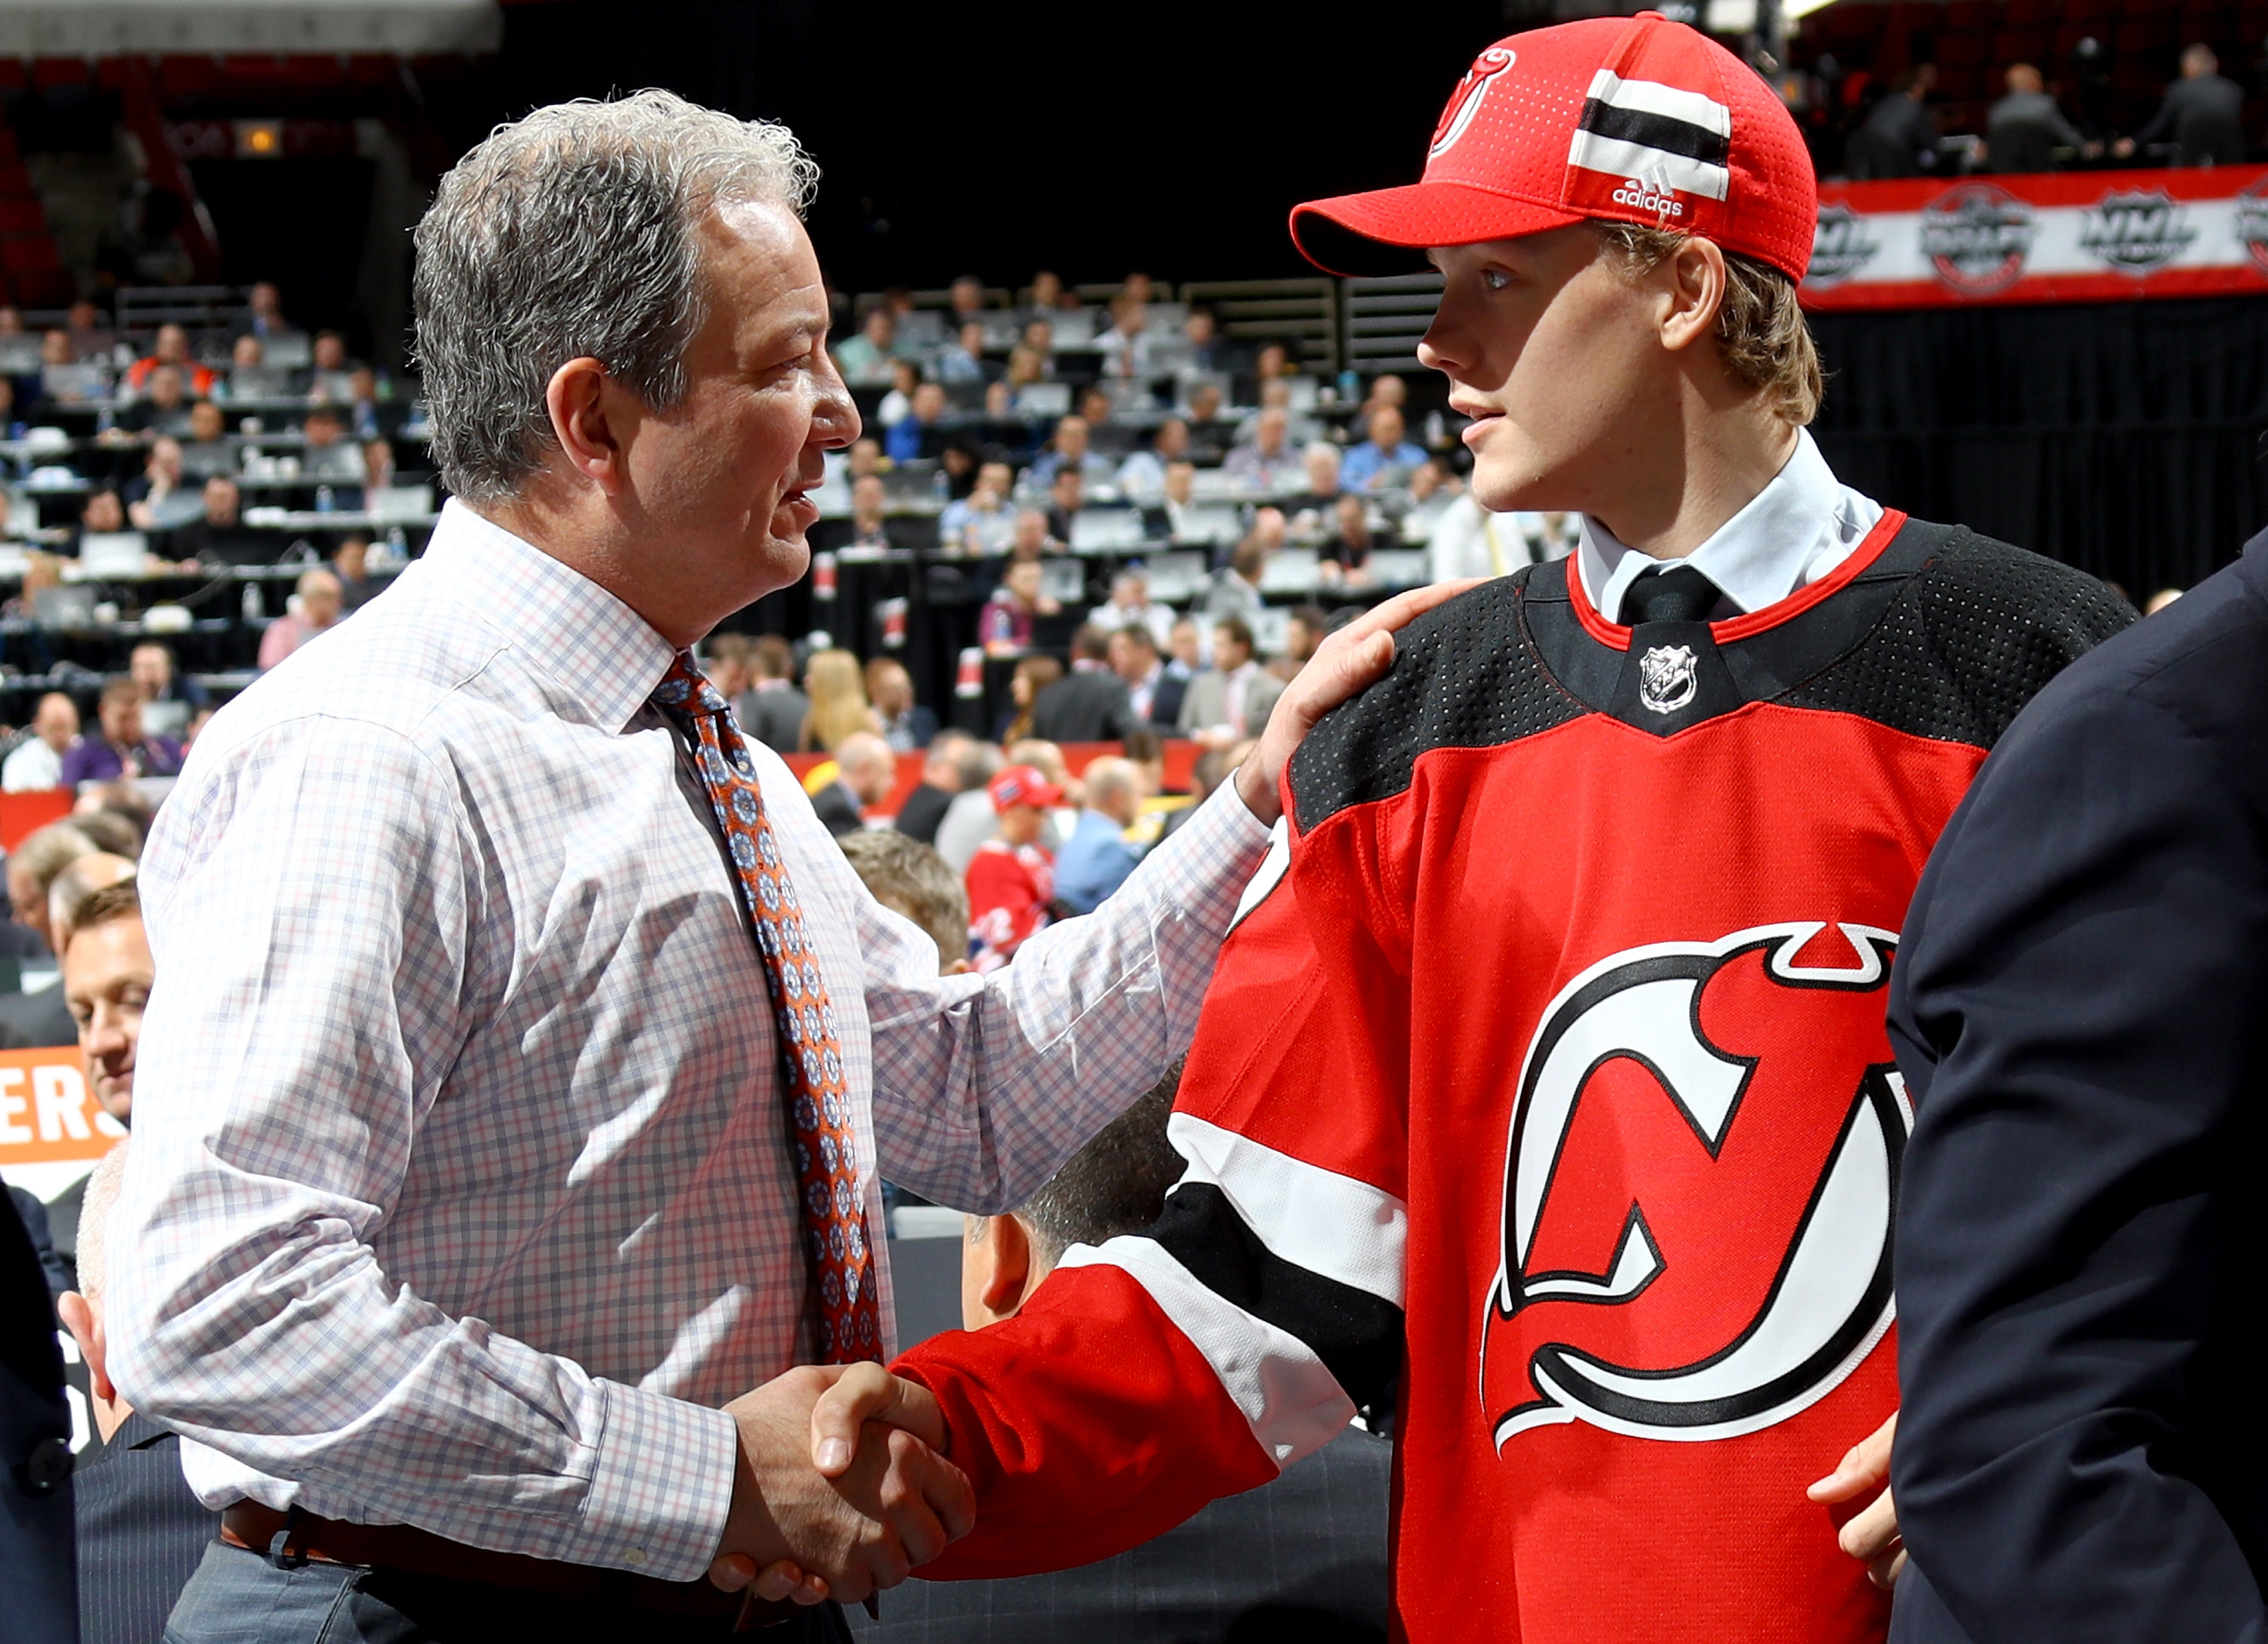 the best attitude 701f4 33aee All About The Jersey Archives - 2017 NHL Draft Prospects ...